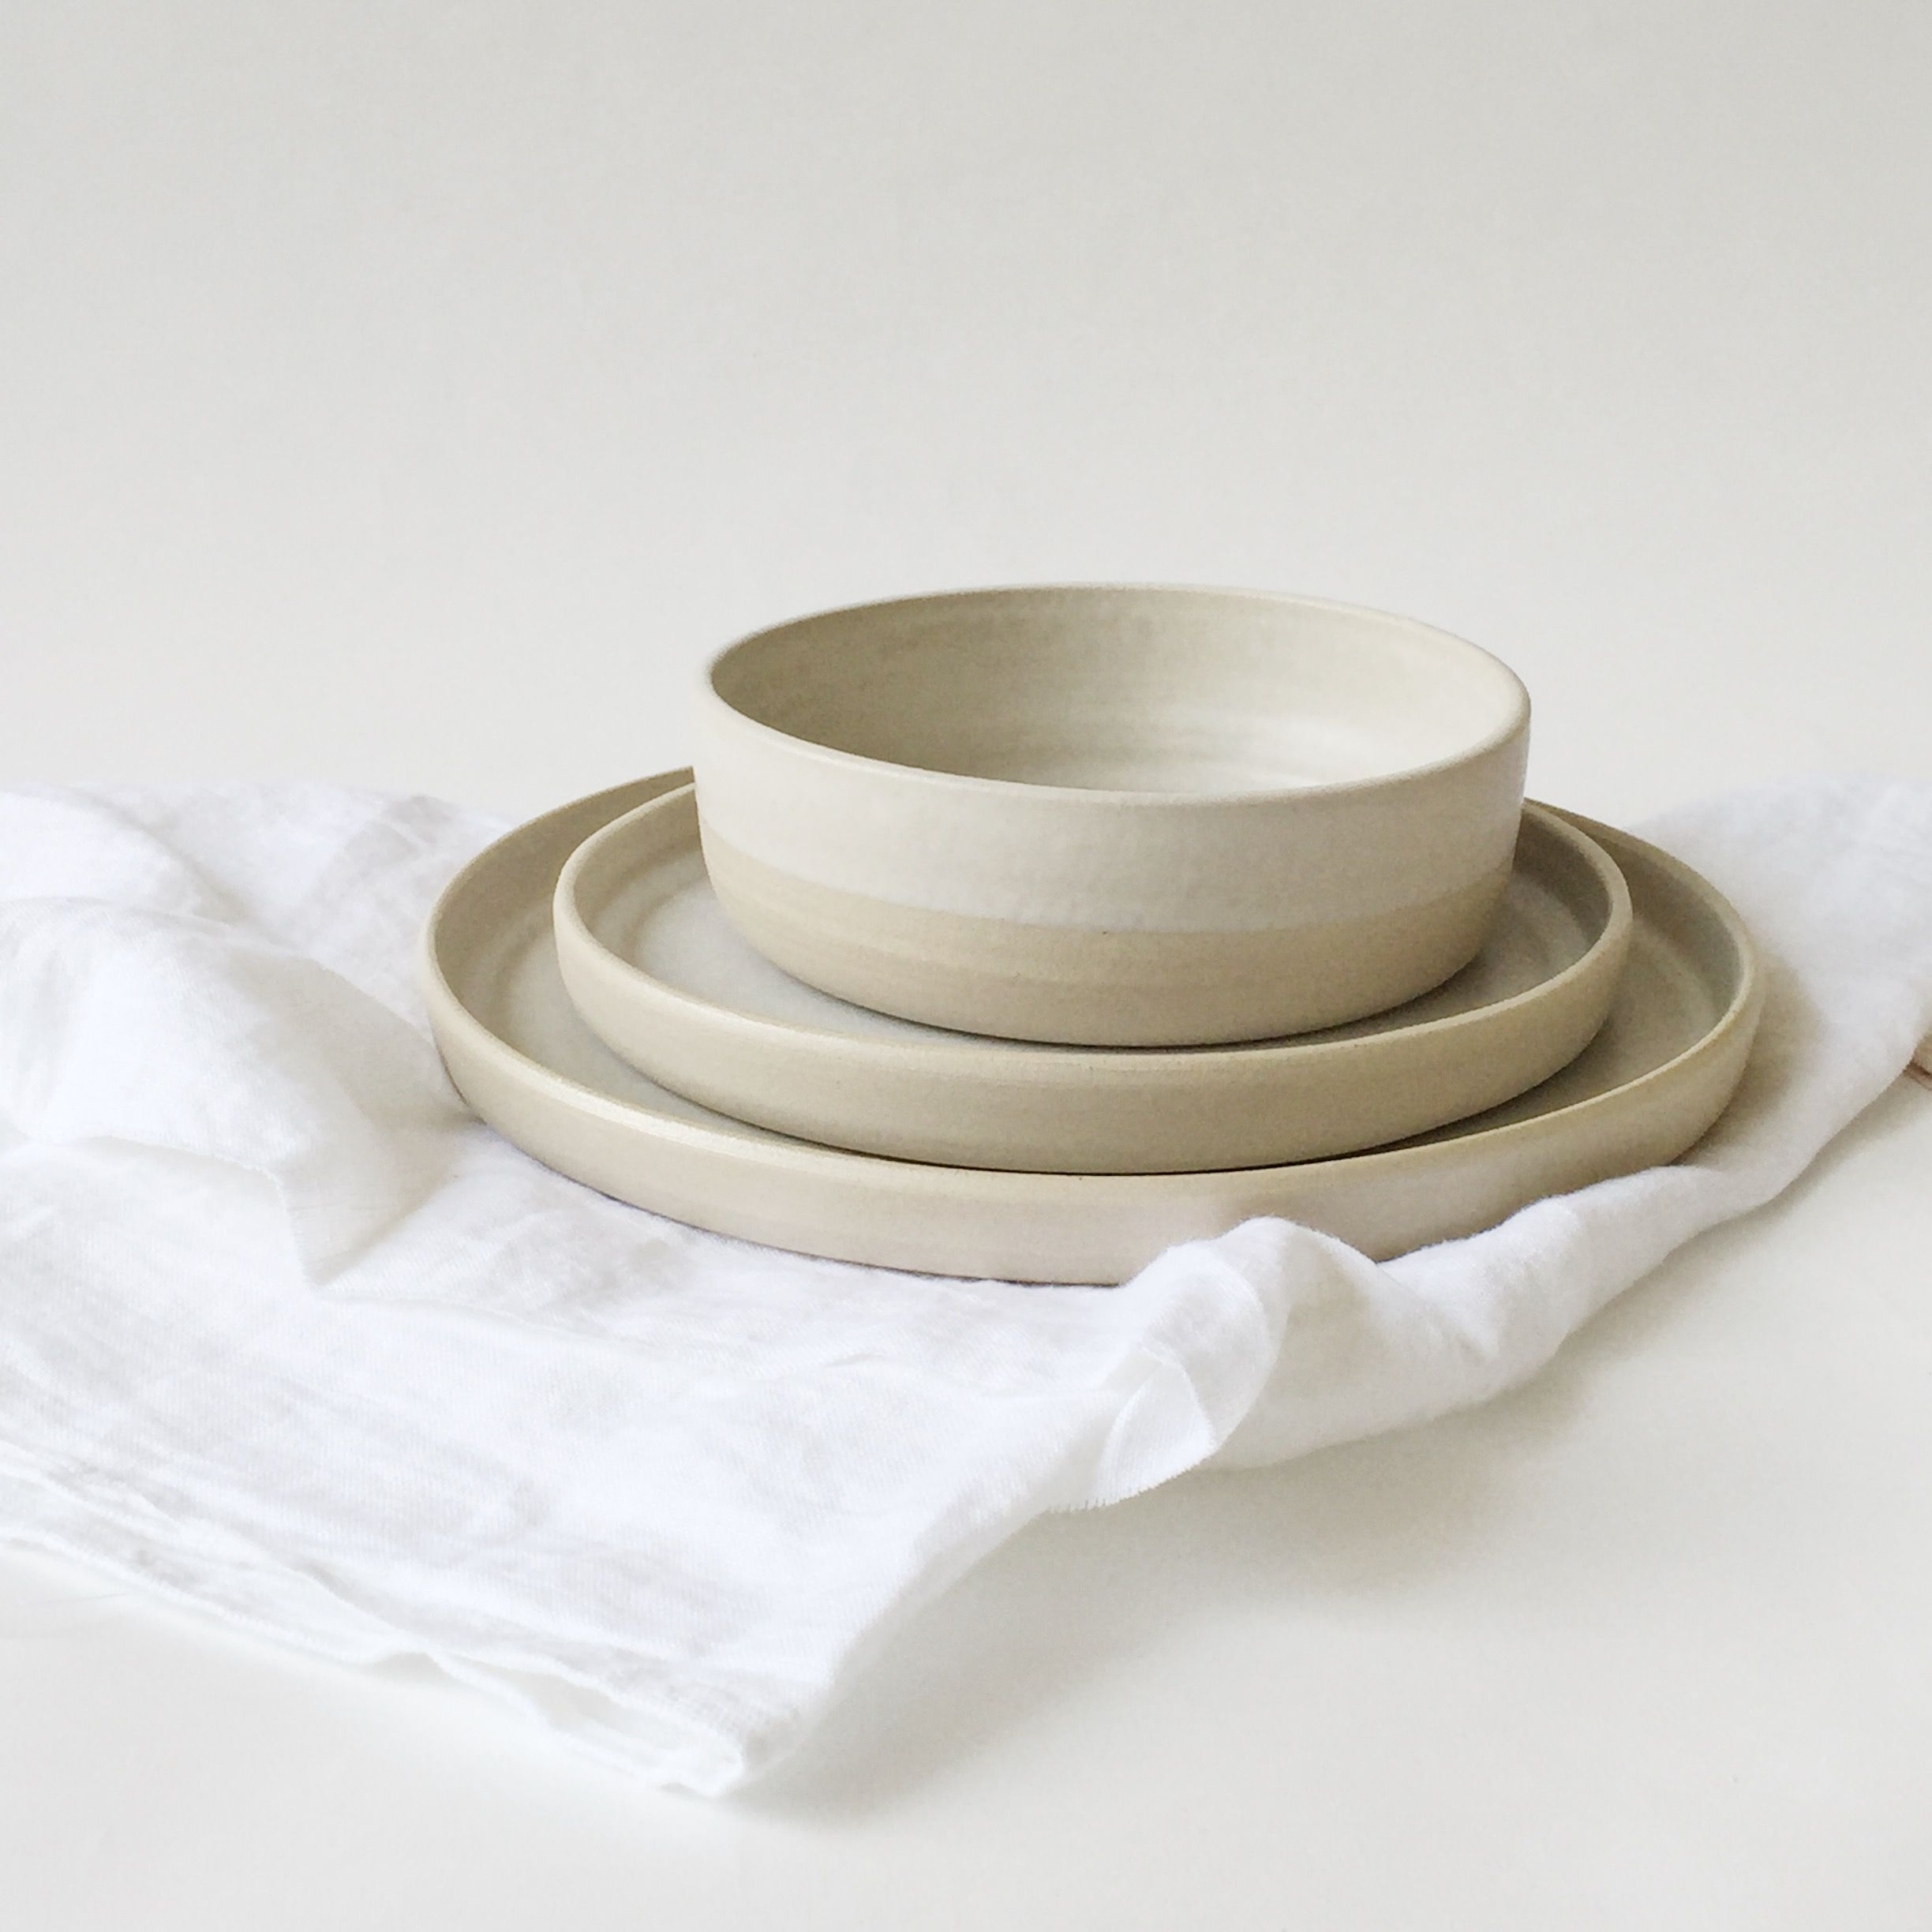 Offwhite Handmade Ceramic Dish Set With Plates And Bowl Cool Texture And Color Pattern Ceramic Ceramics St Ceramic Dish Set Pottery Dishes Ceramic Dishes